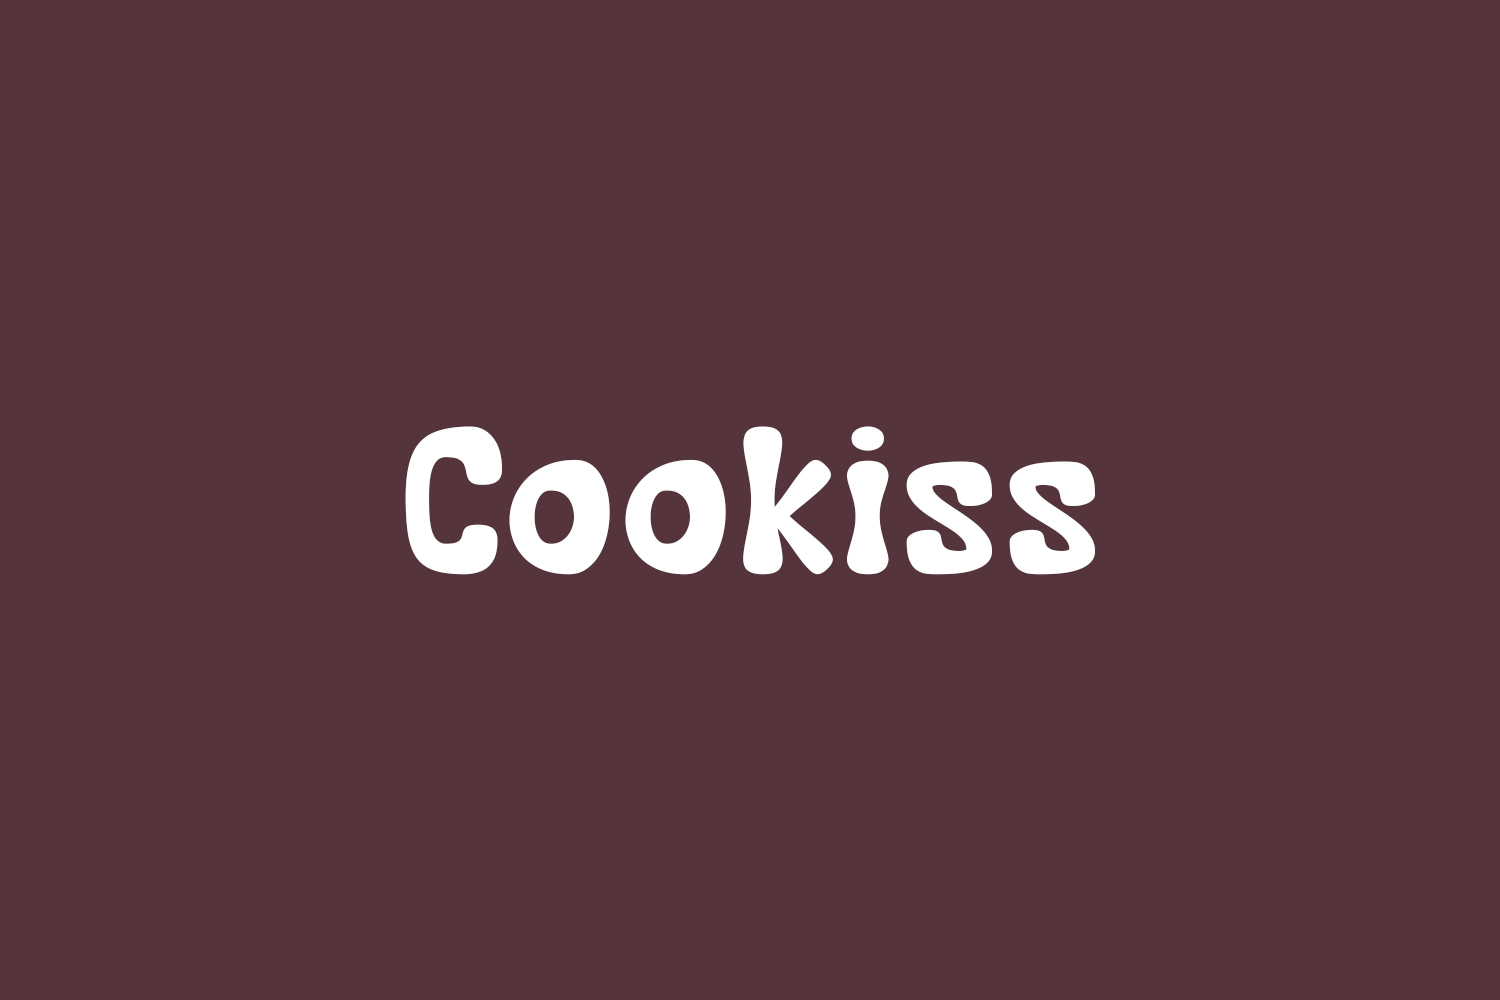 Cookiss Free Font